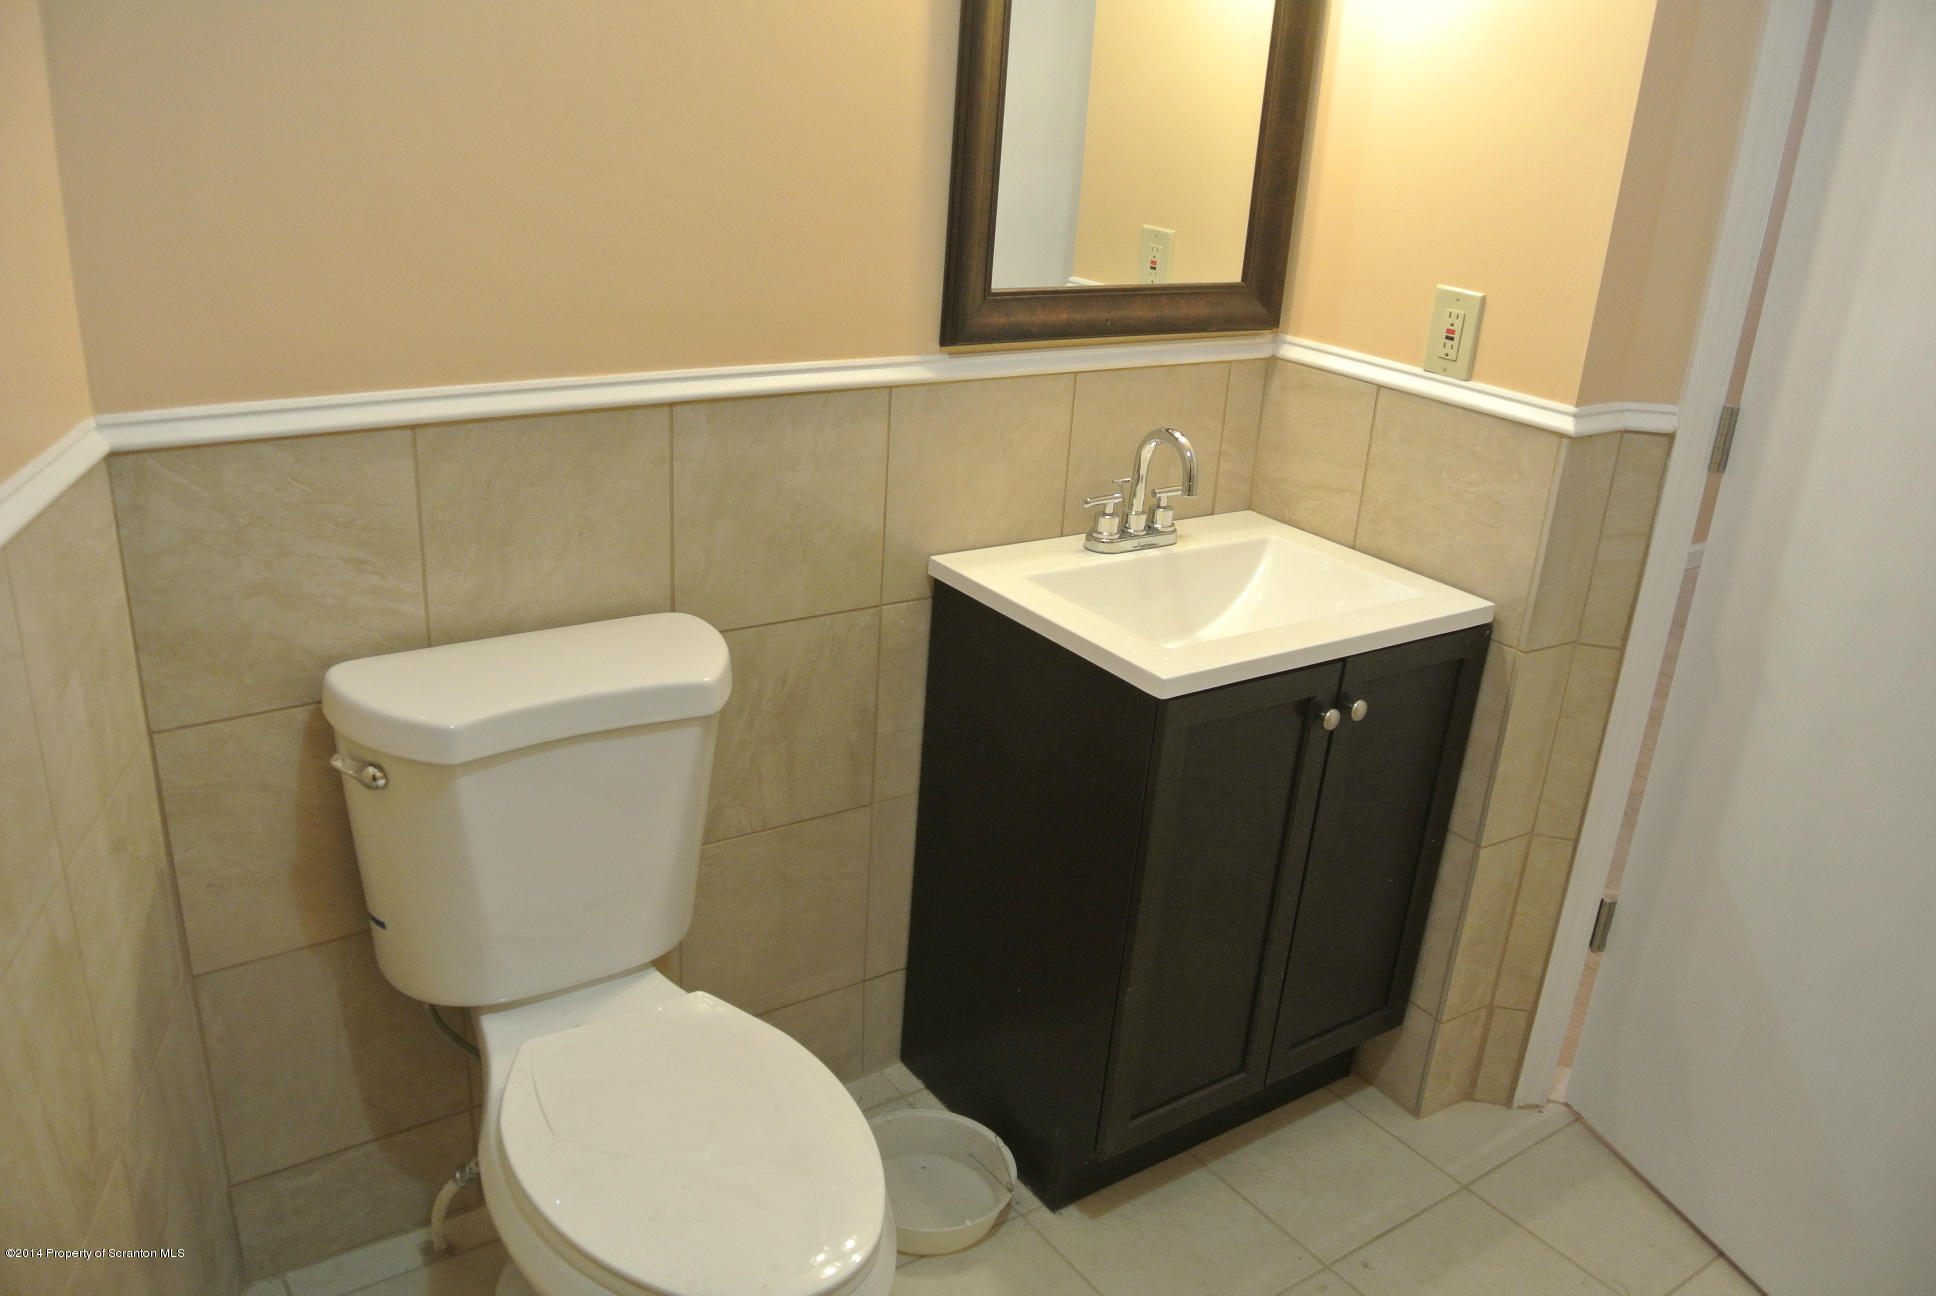 209 State St, Clarks Summit, Pennsylvania 18411, ,1 BathroomBathrooms,Commercial,For Lease,State,14-625